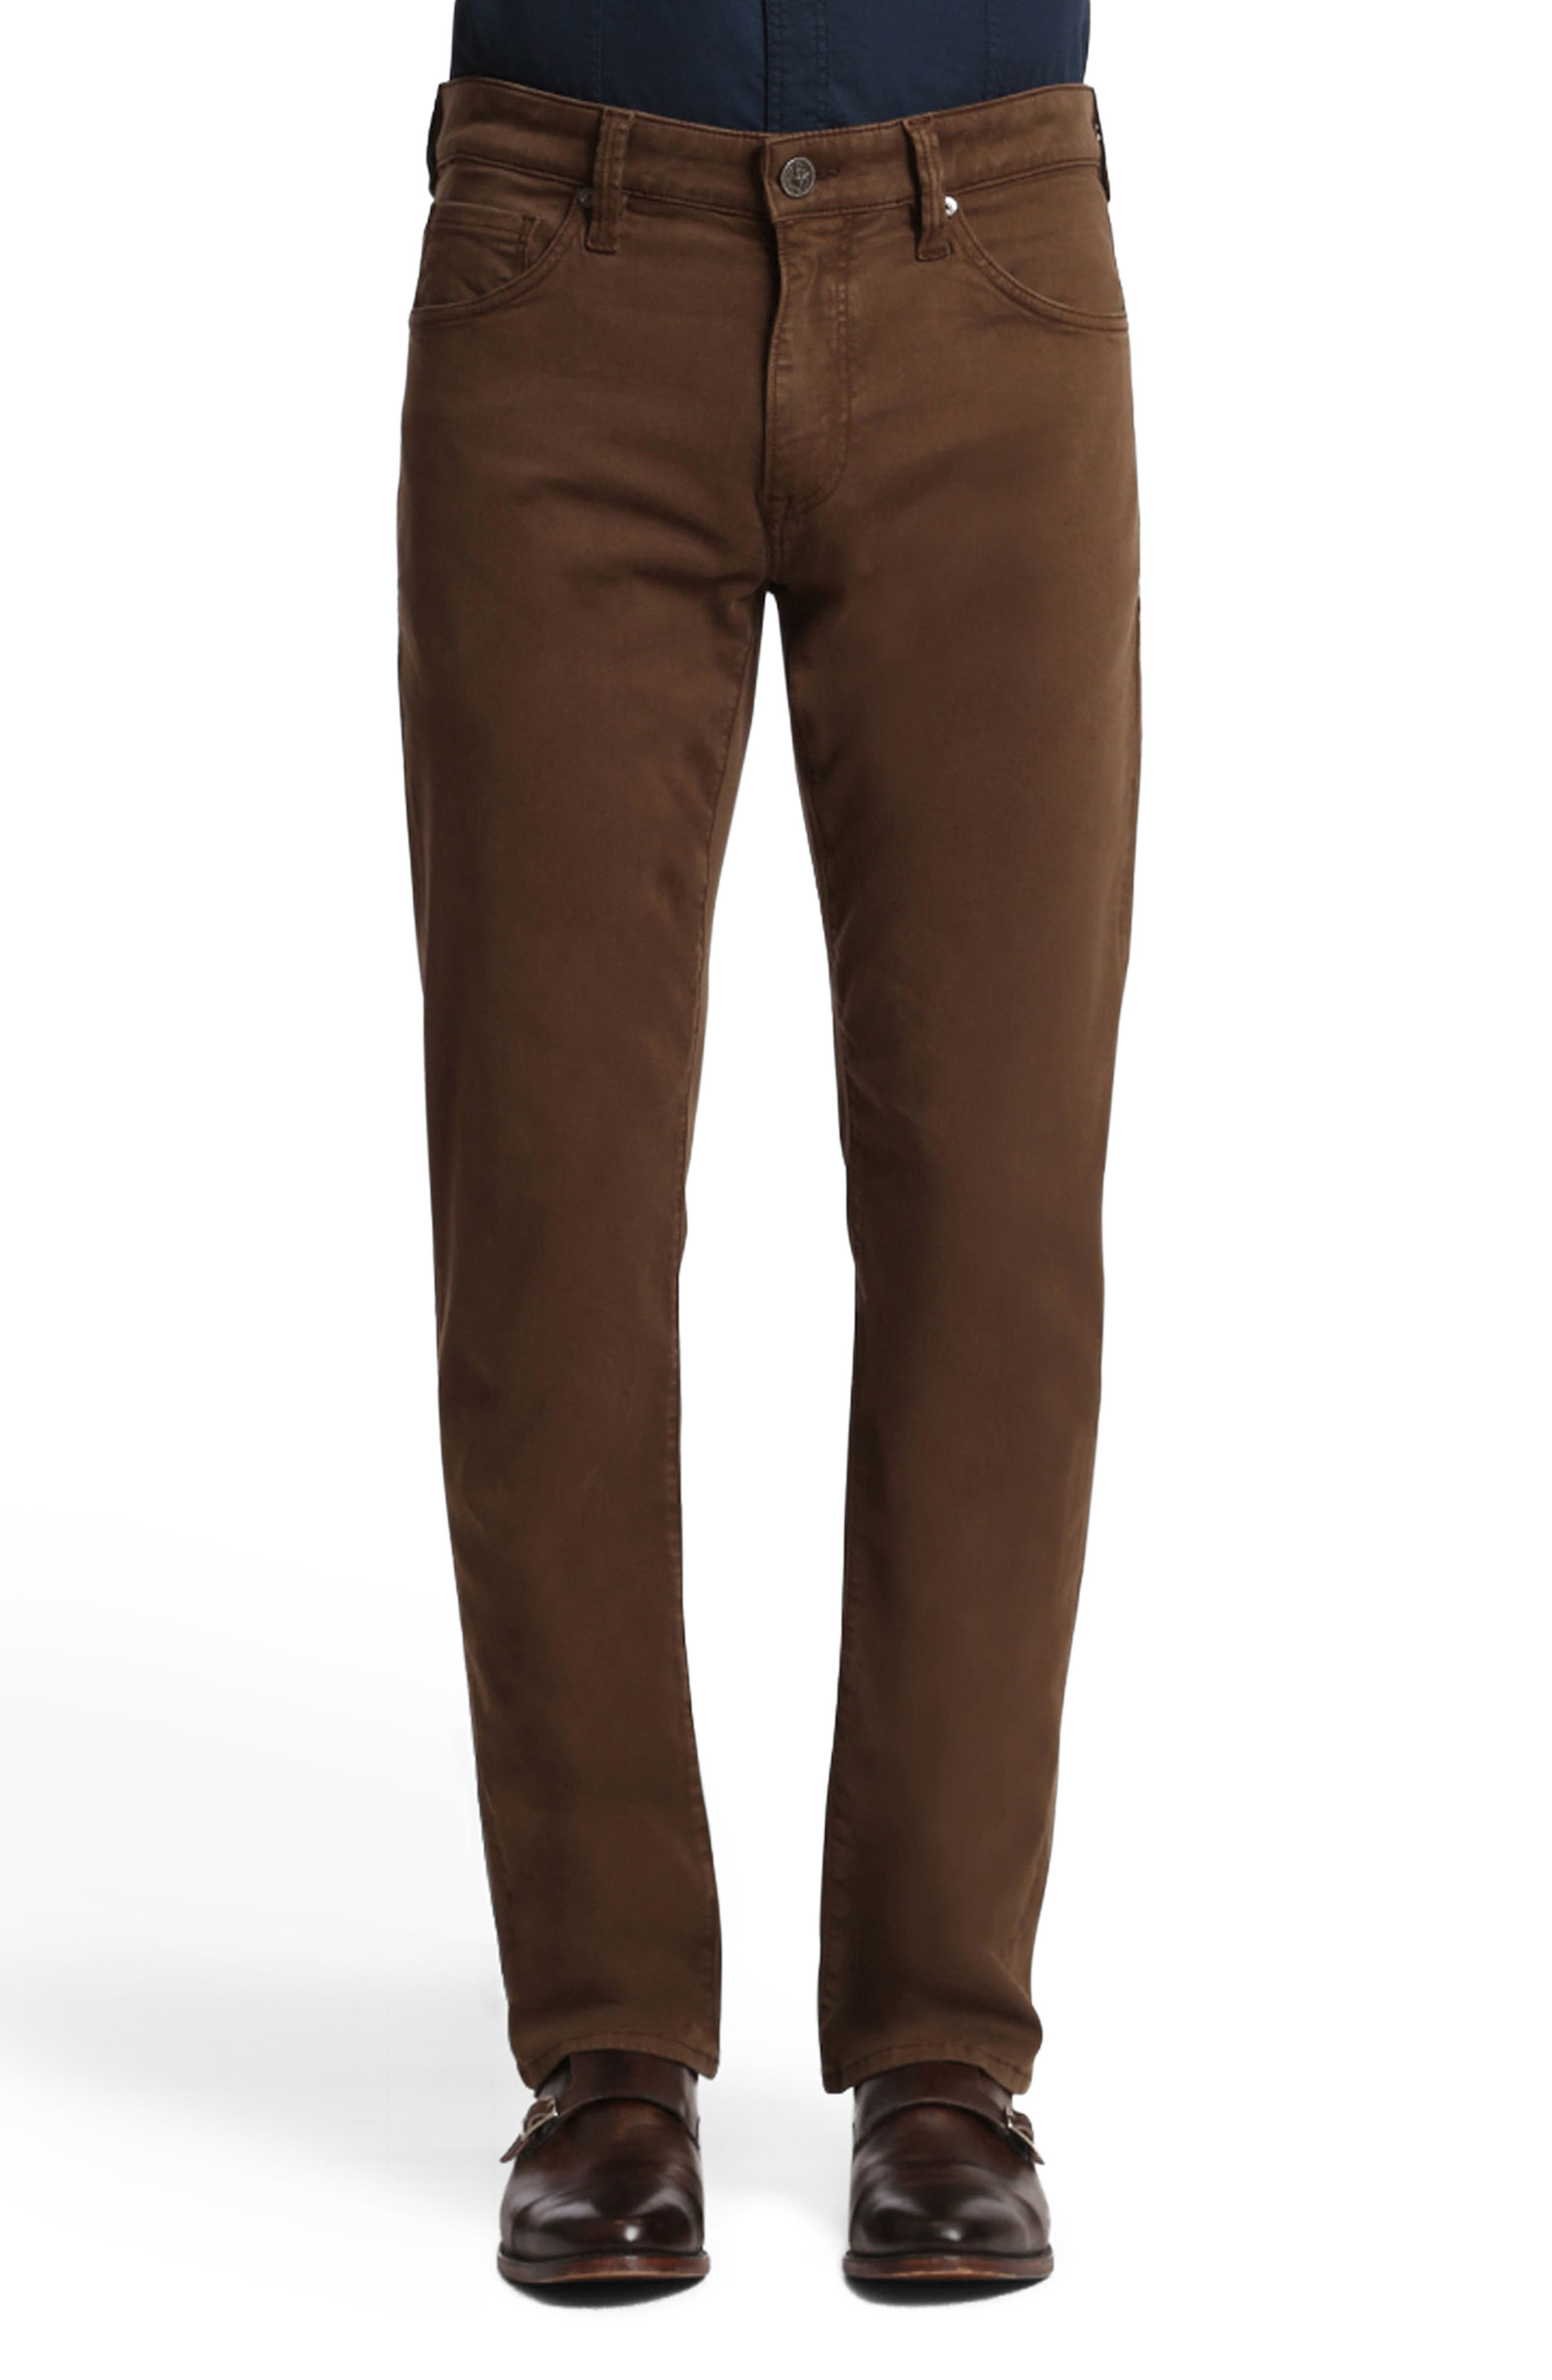 Courage Straight Leg Twill Pants,                         Main,                         color, Choco Twill